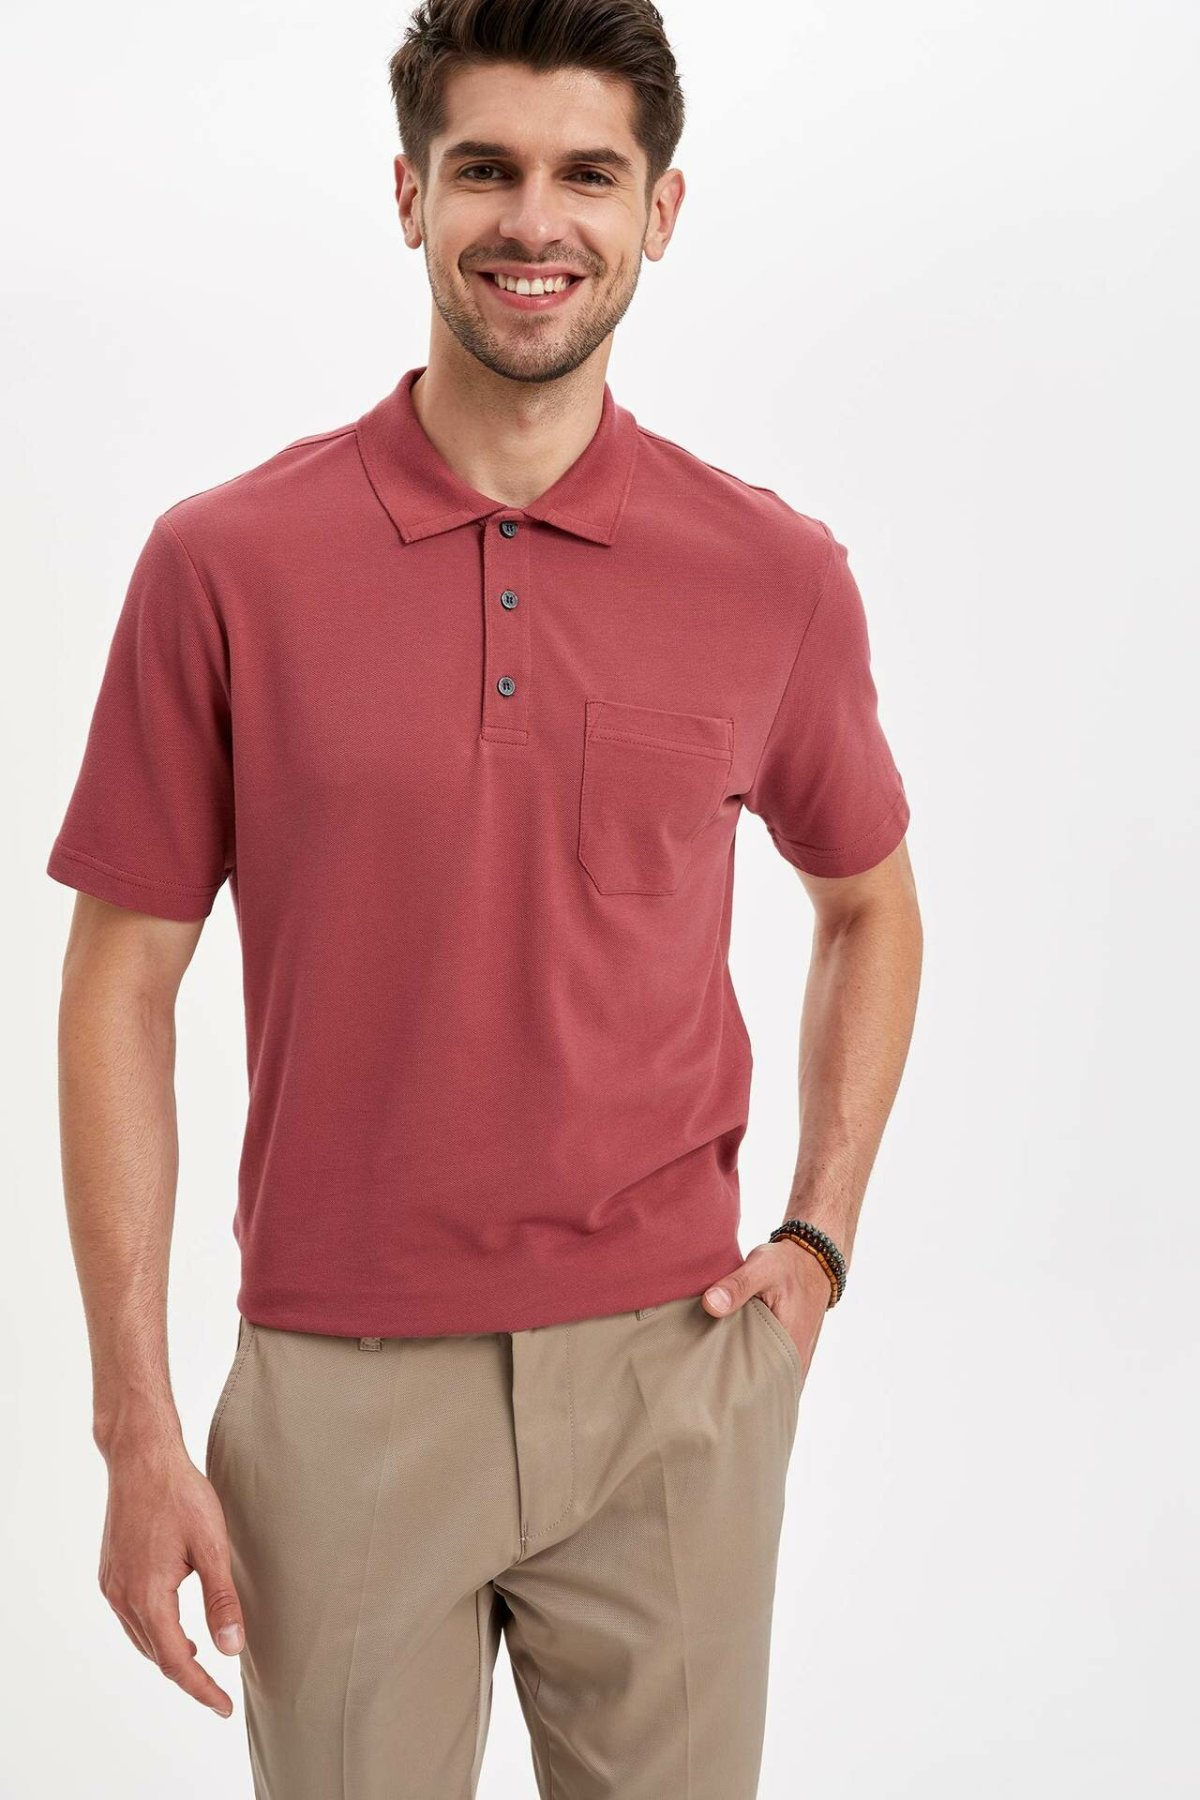 DeFacto Man Fashion   Polo   Shirt Casual Fashion Pure Color Short Sleeve High Quality Slim   Polo   Shirt New -L3754AZ19SM